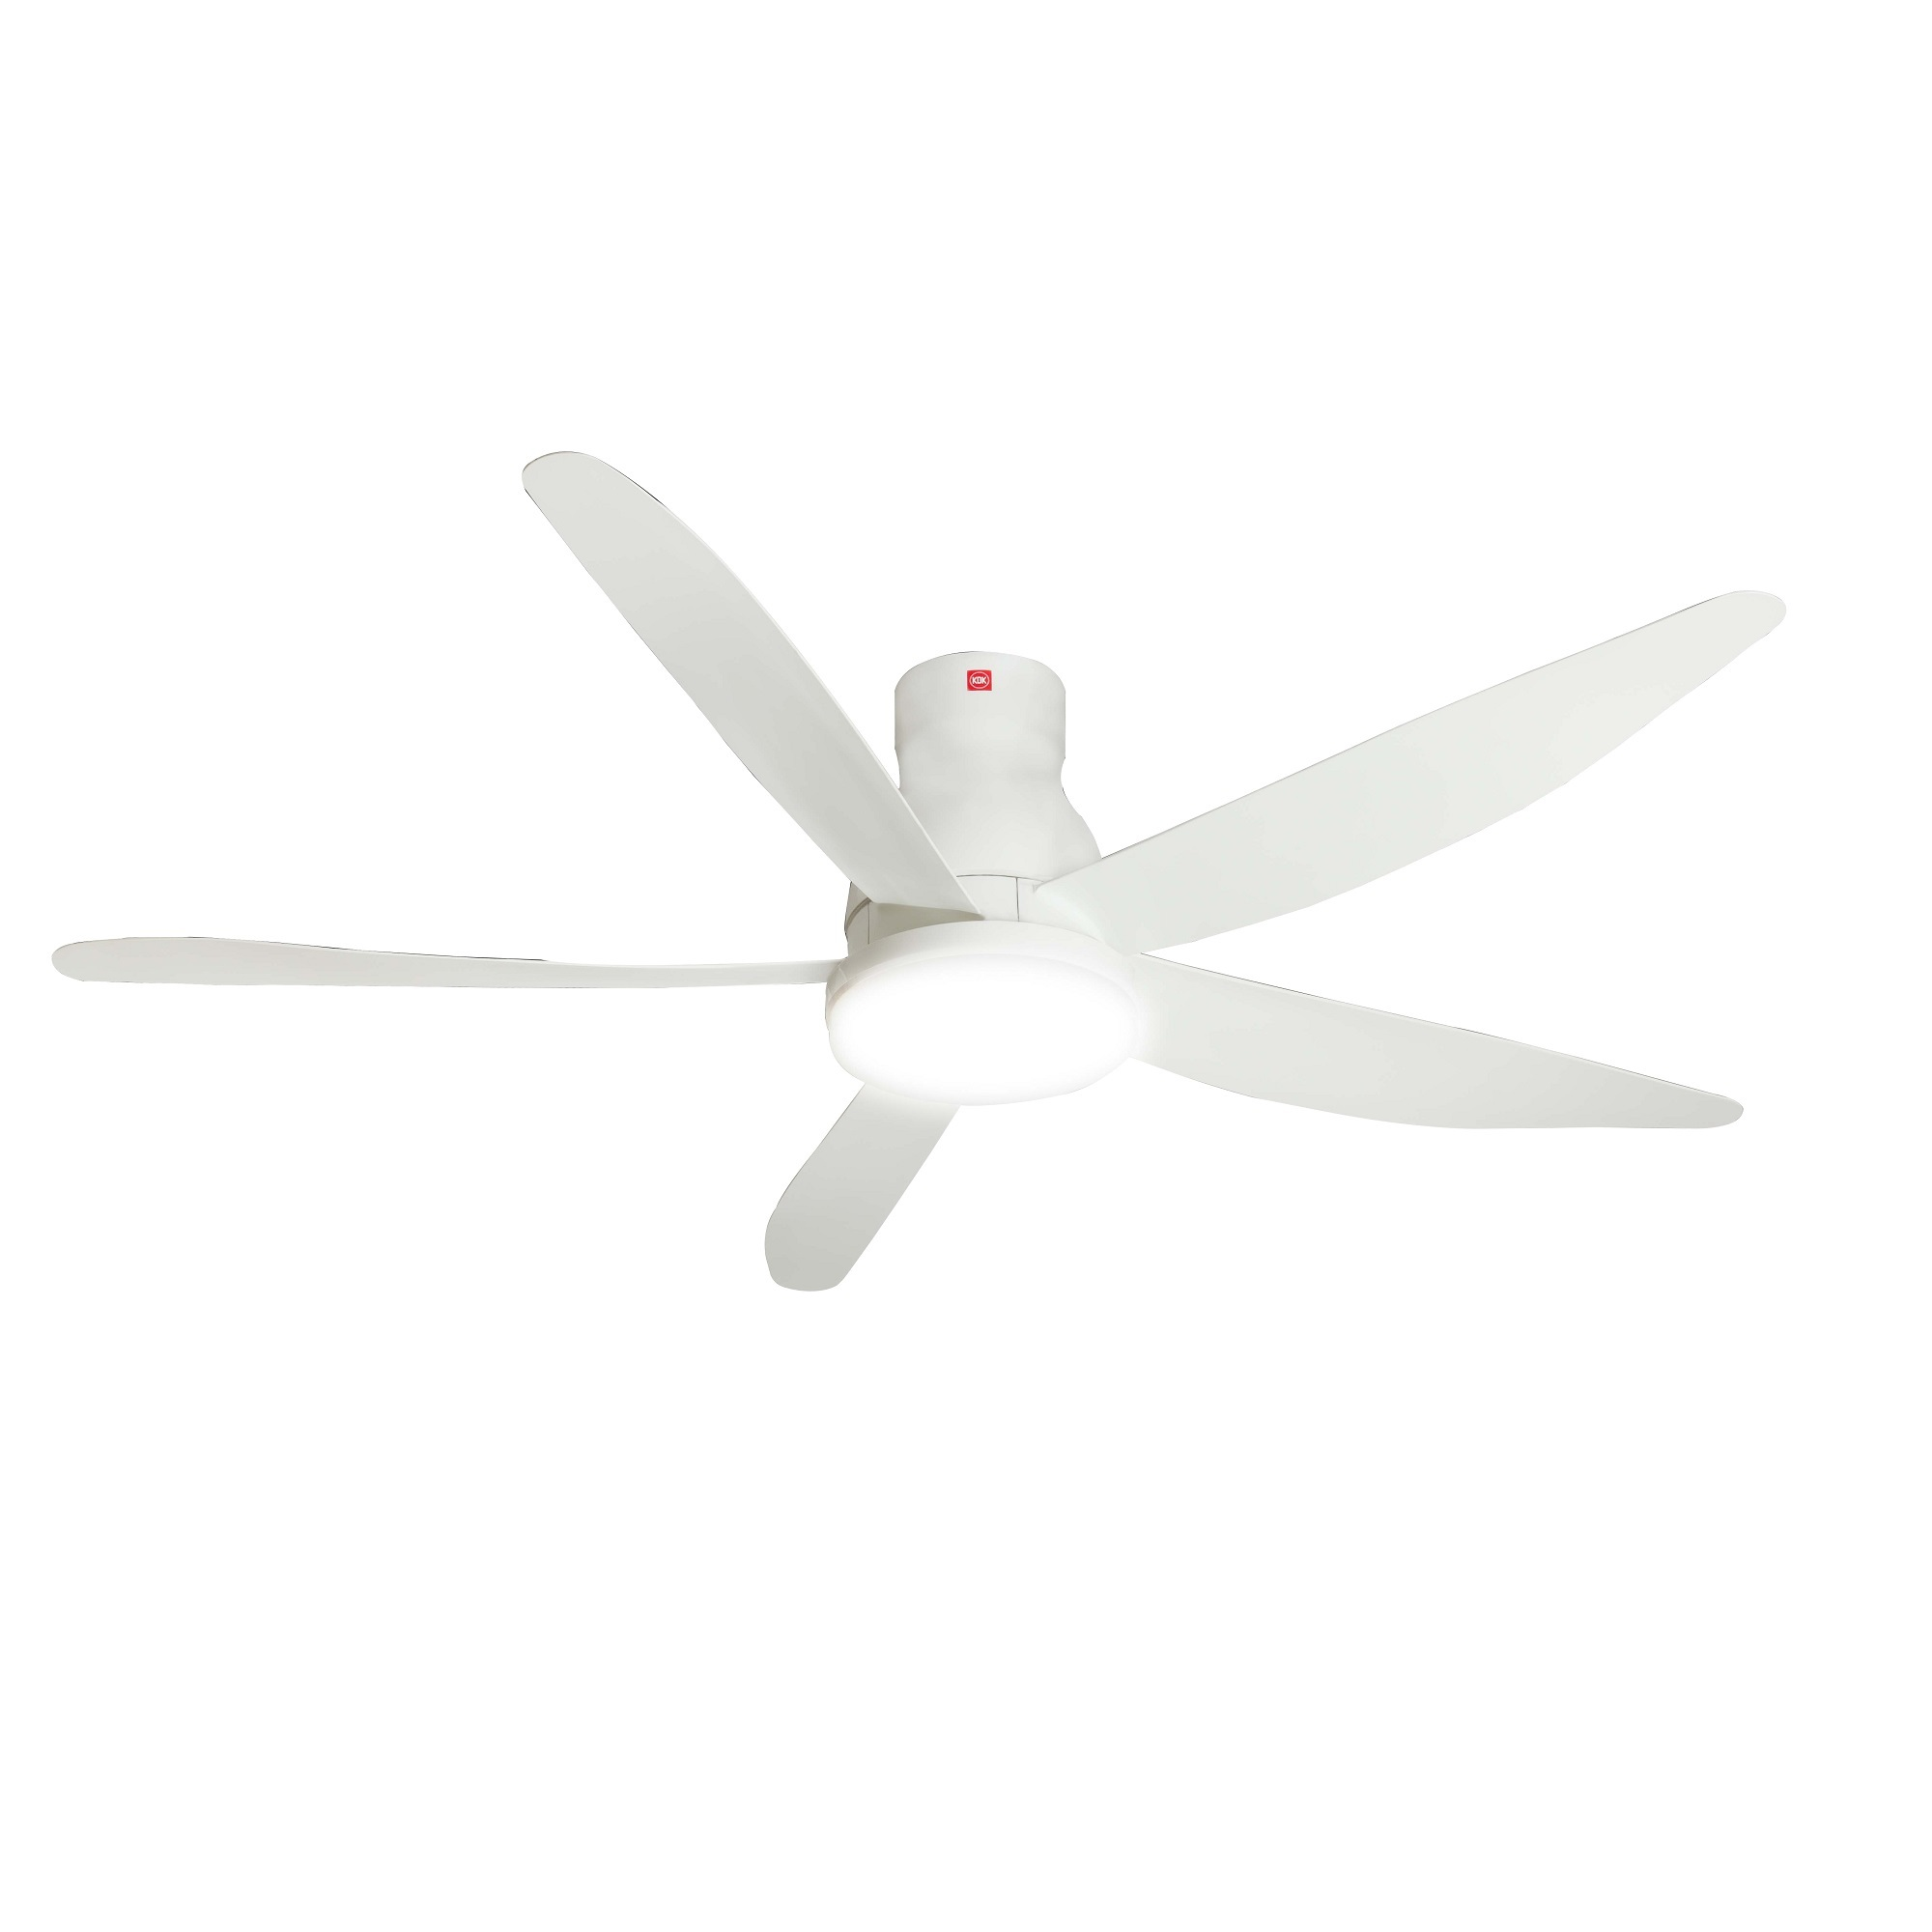 U60FW 150CM Ceiling Fan White - Short Pipe Singapore for Kdk Ceiling Fan Model  110zmd